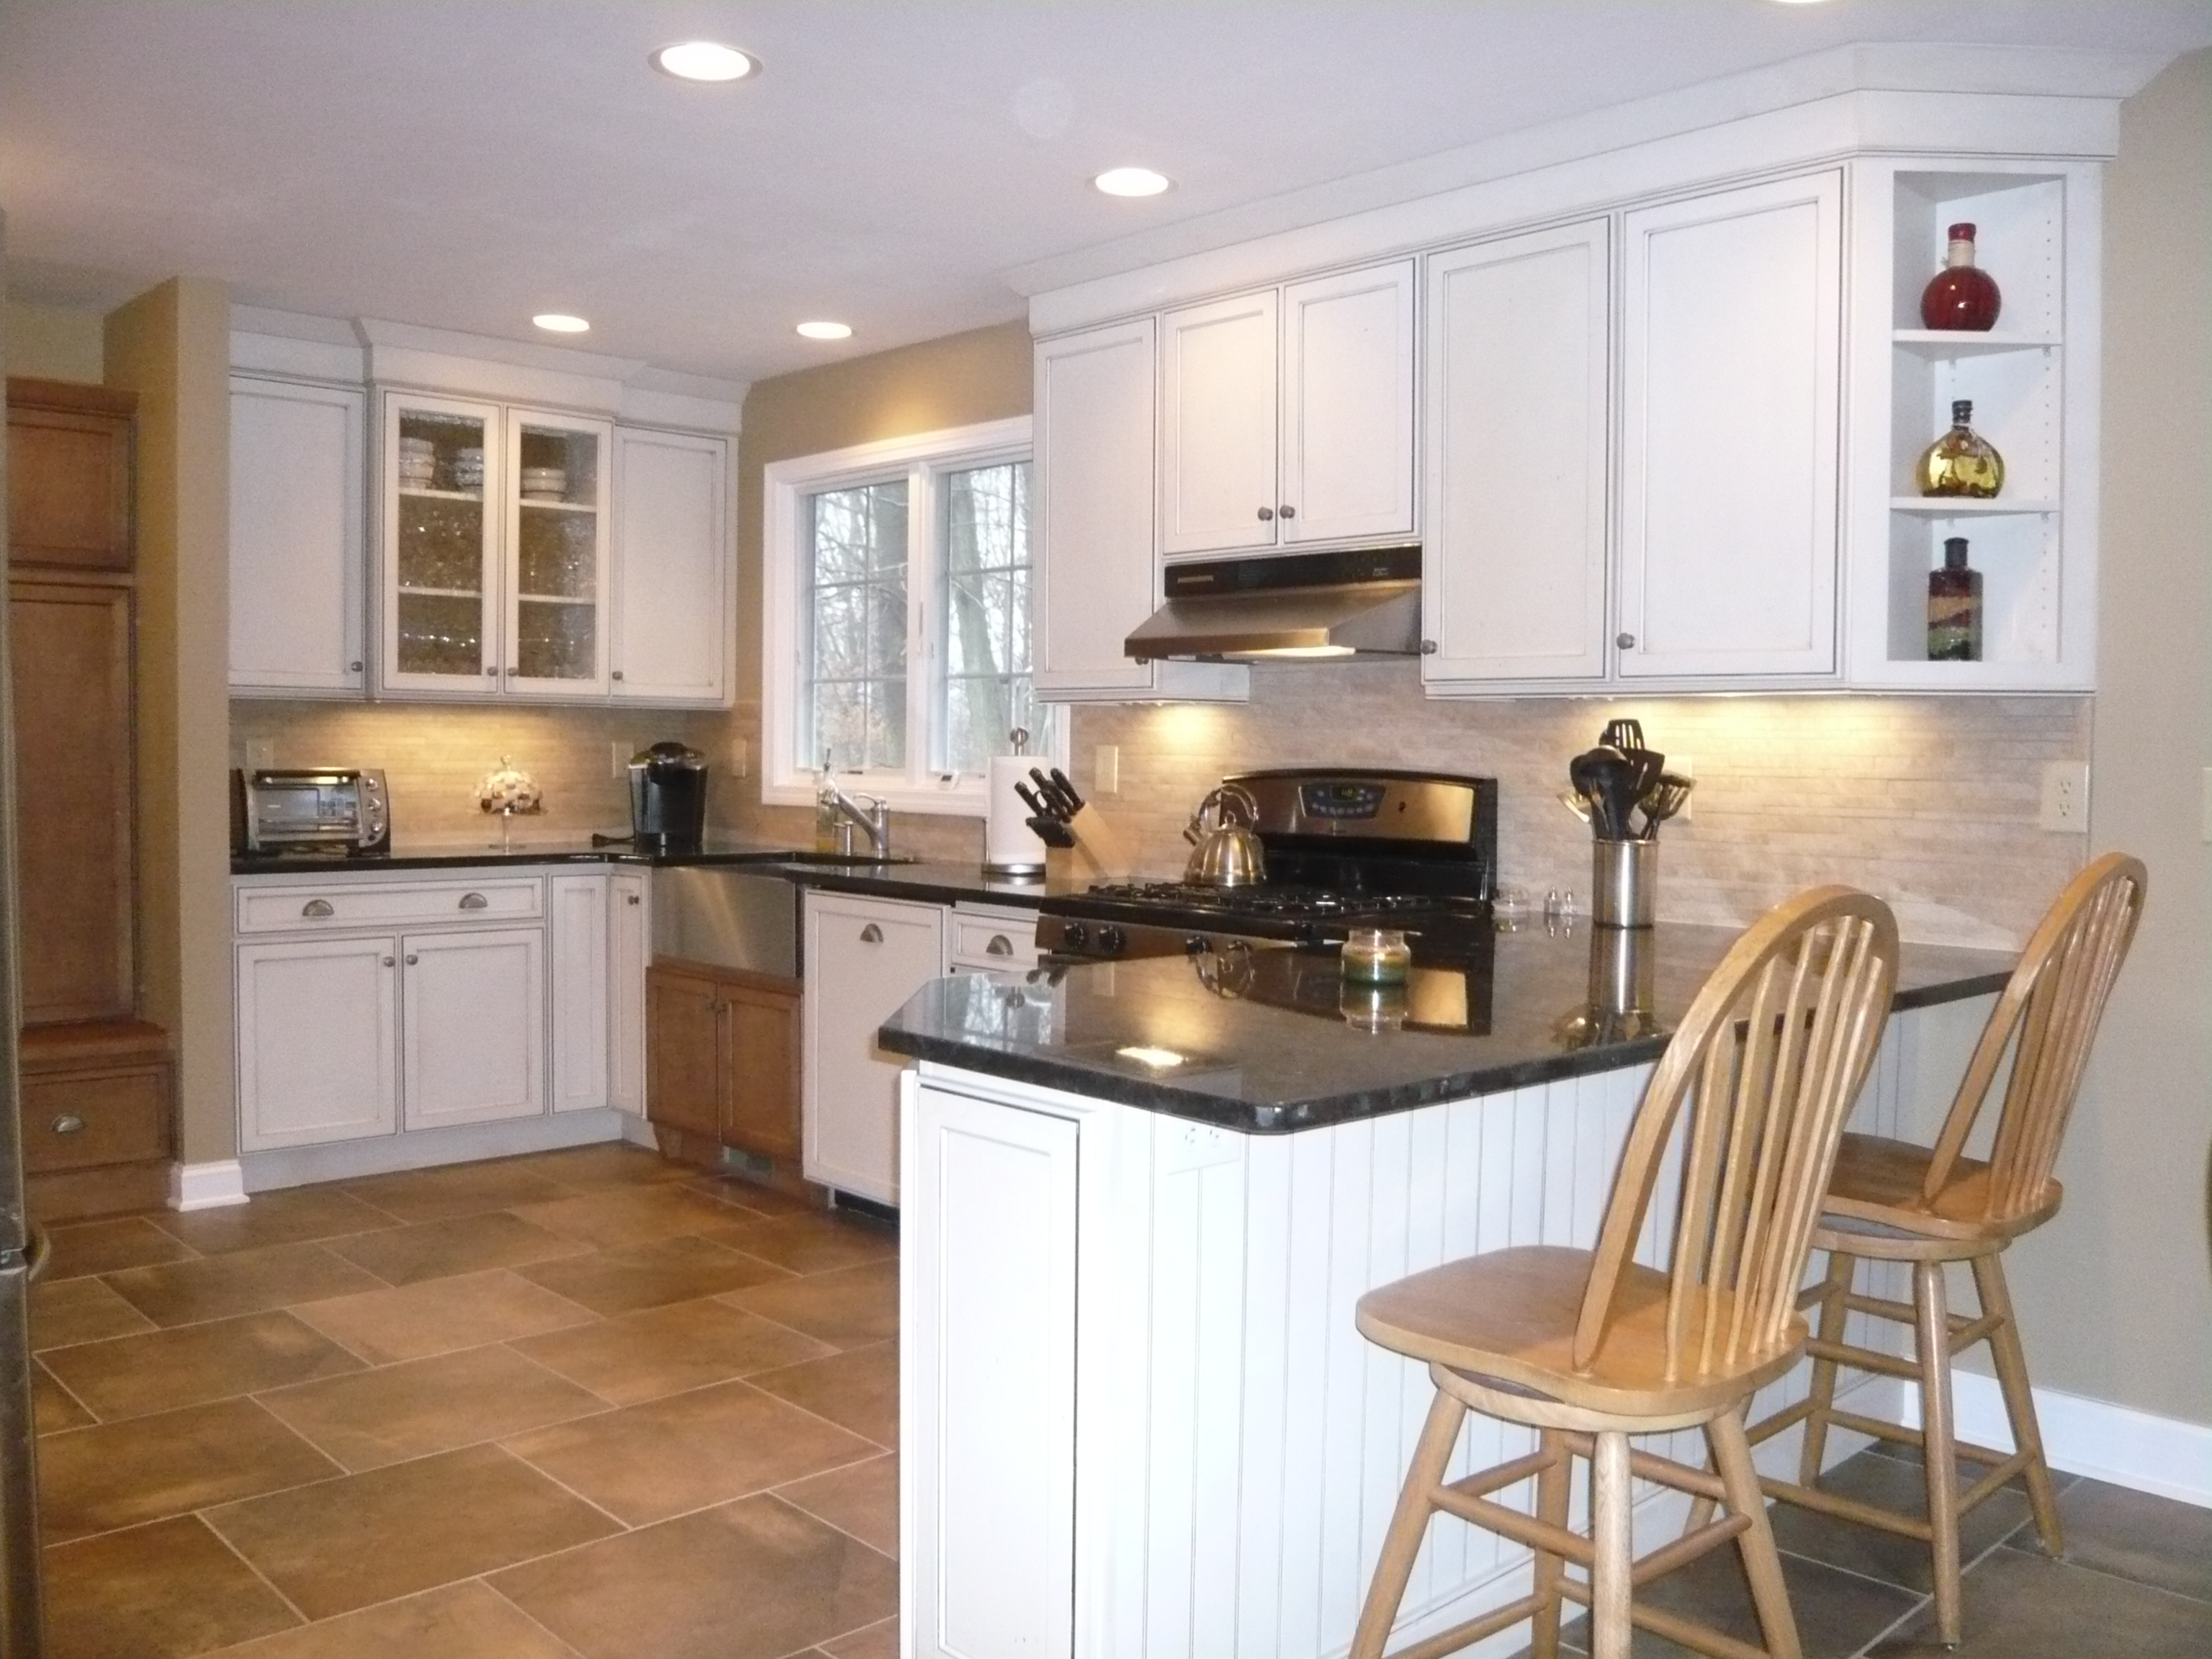 Wood And Paint Mix In Milford Ct Kitchen Design Center